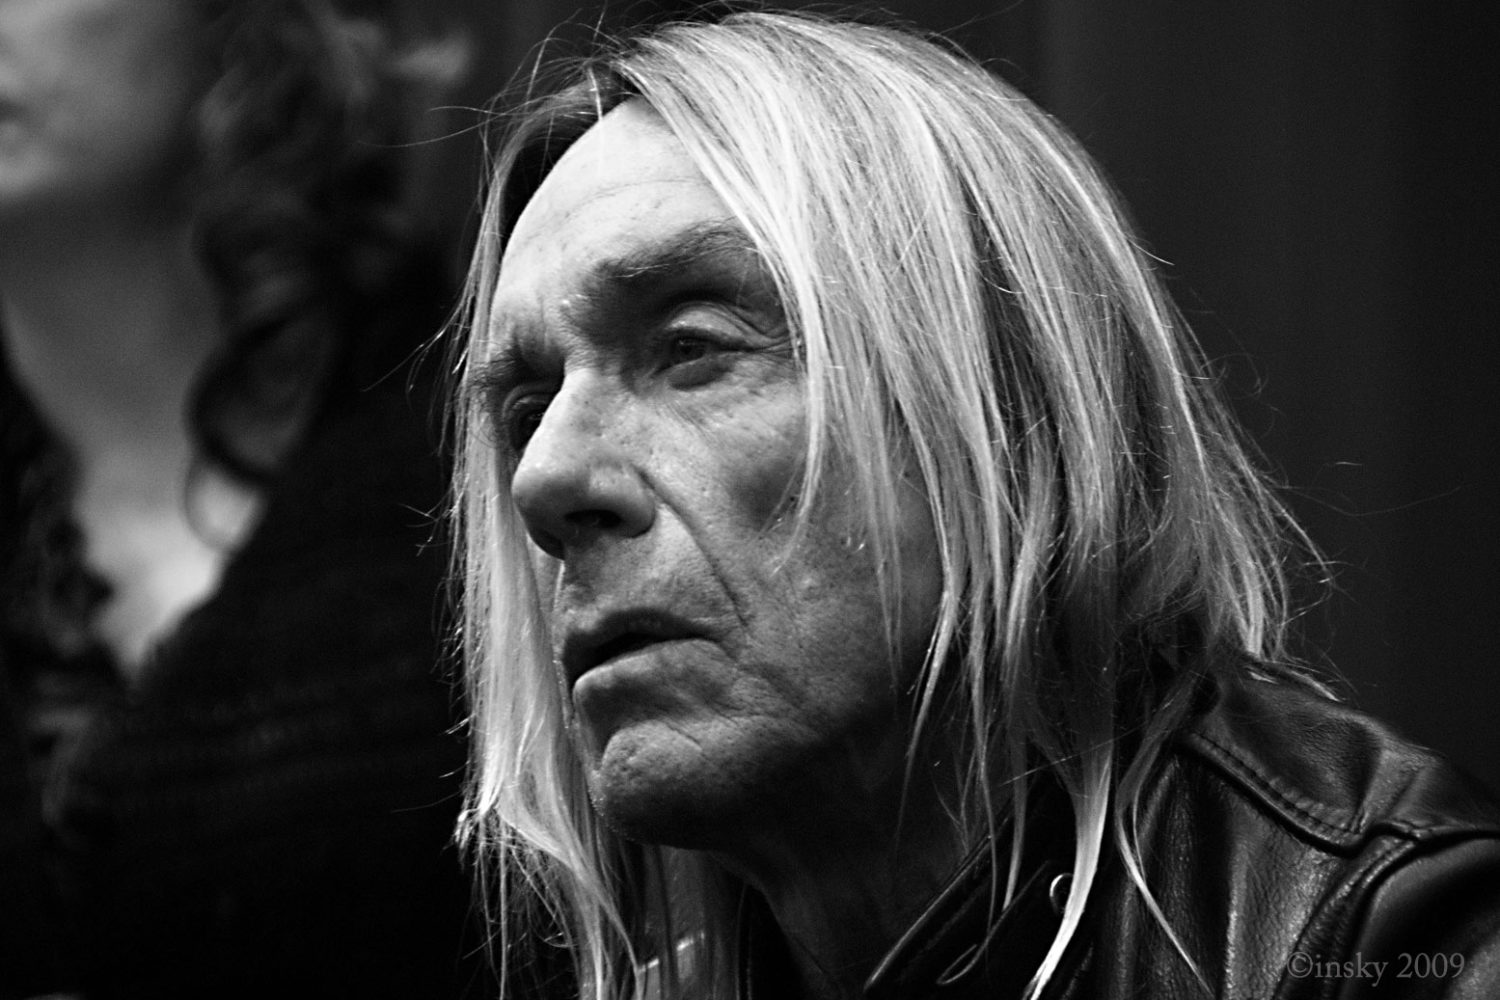 Iggy Pop, Buzzcocks, Adam Ant, The Damned to play Isle of Wight Festival